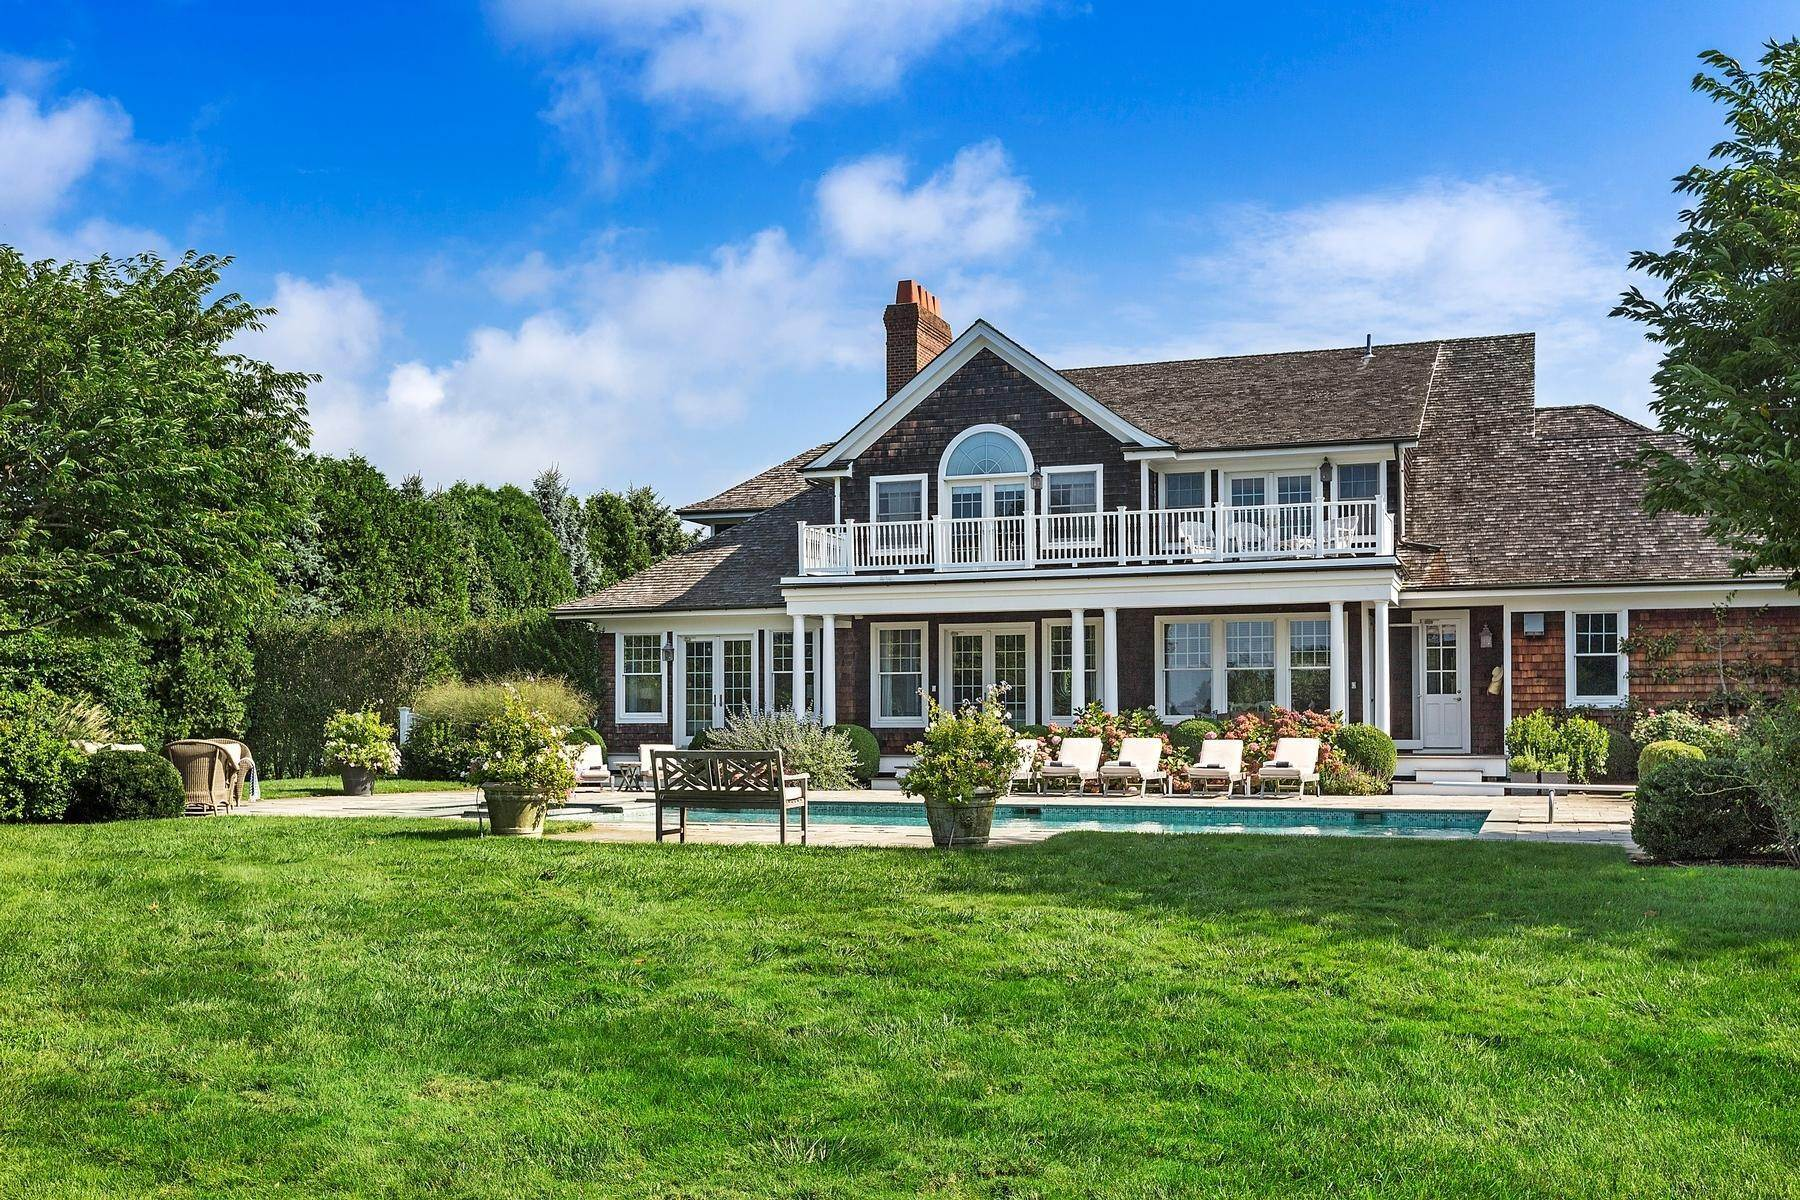 Single Family Home at Beautiful Butter Lane Bridgehampton, NY 11932